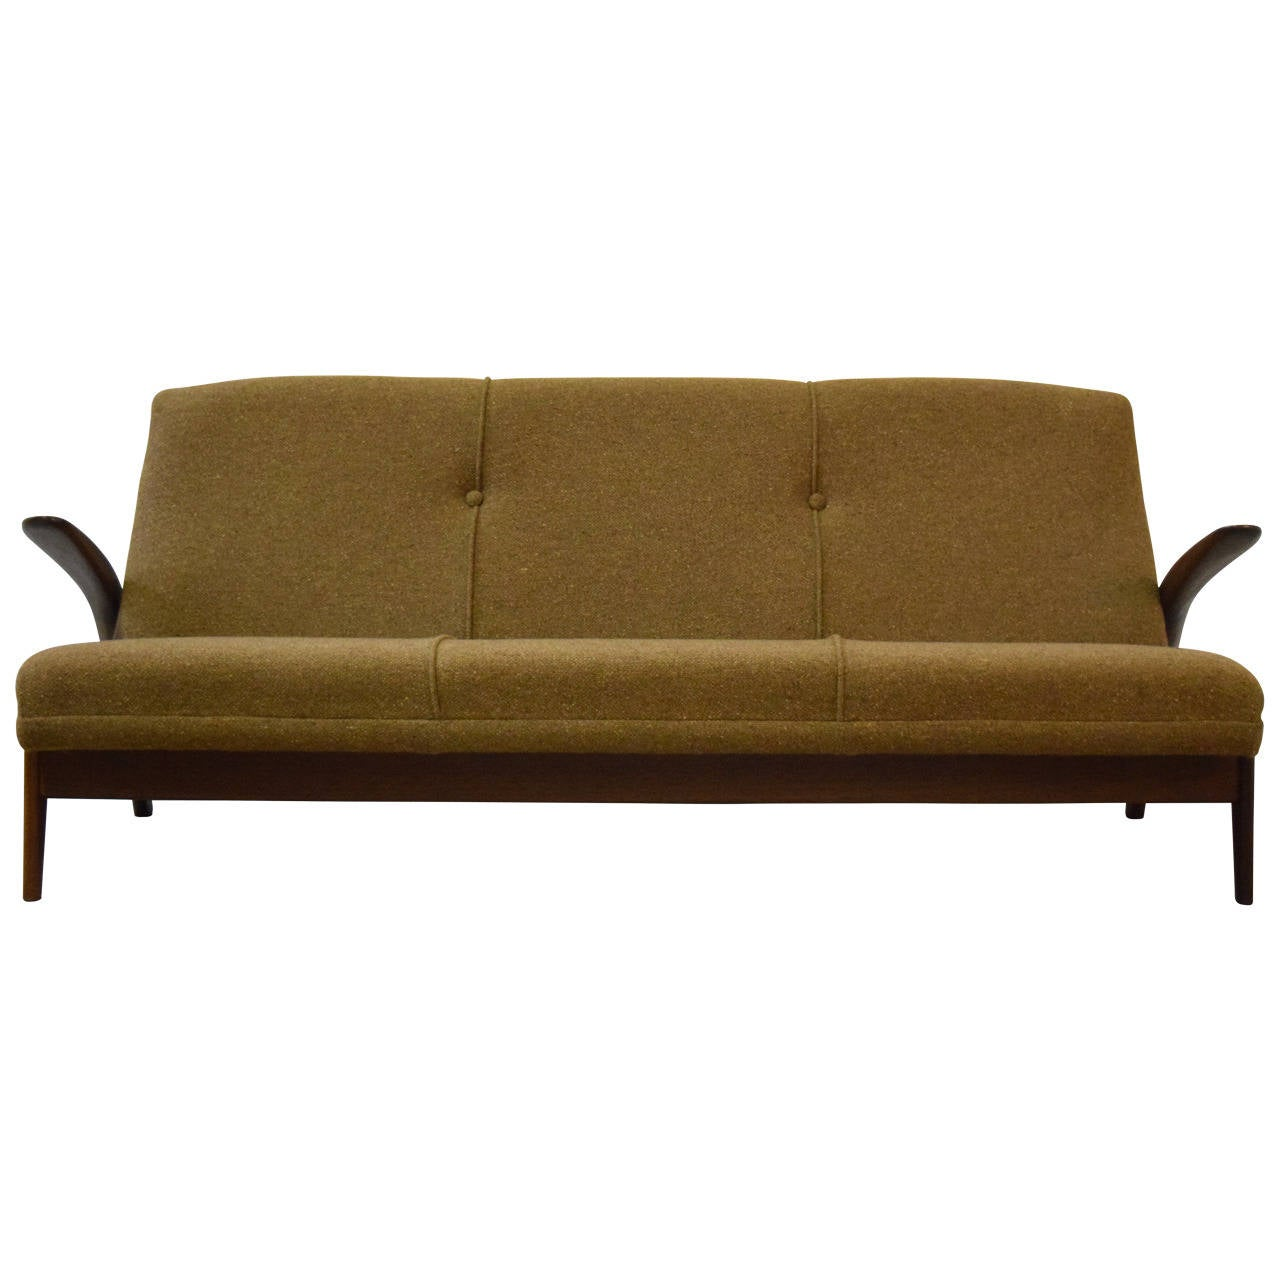 Sculptural Gimson and Slater Three-Seater Sofa For Sale